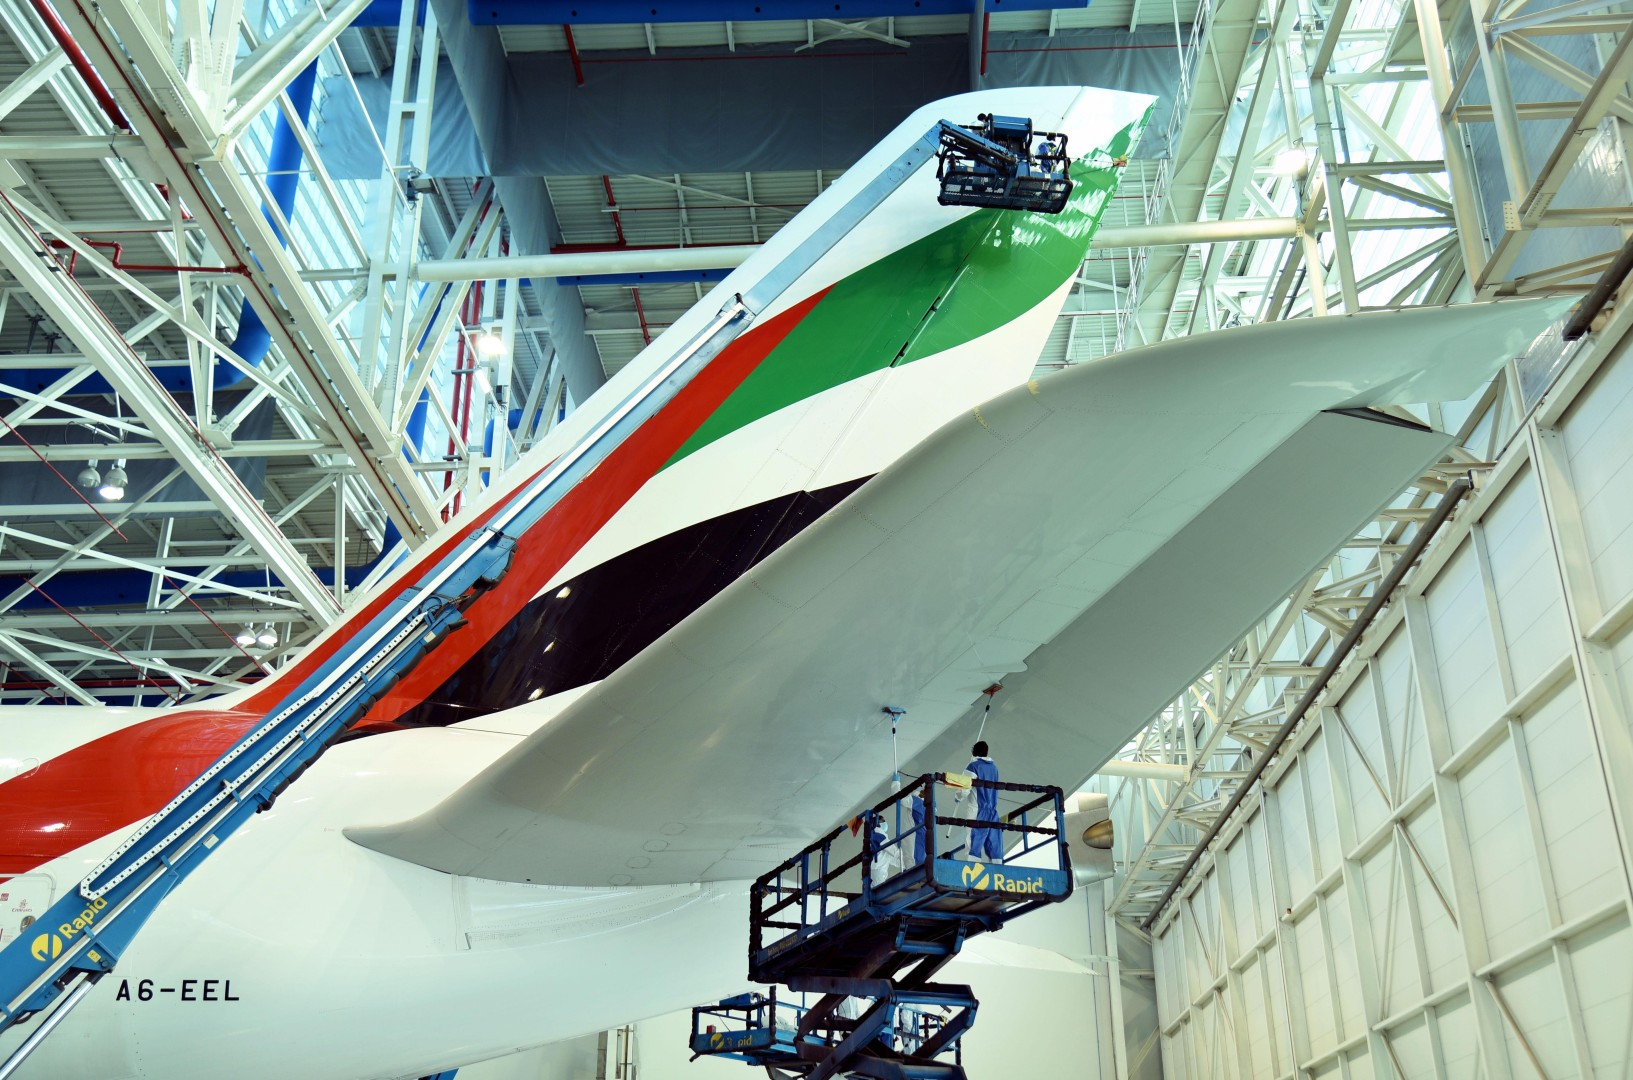 Why KLM, Singapore Airlines and Emirates are all flying green ...